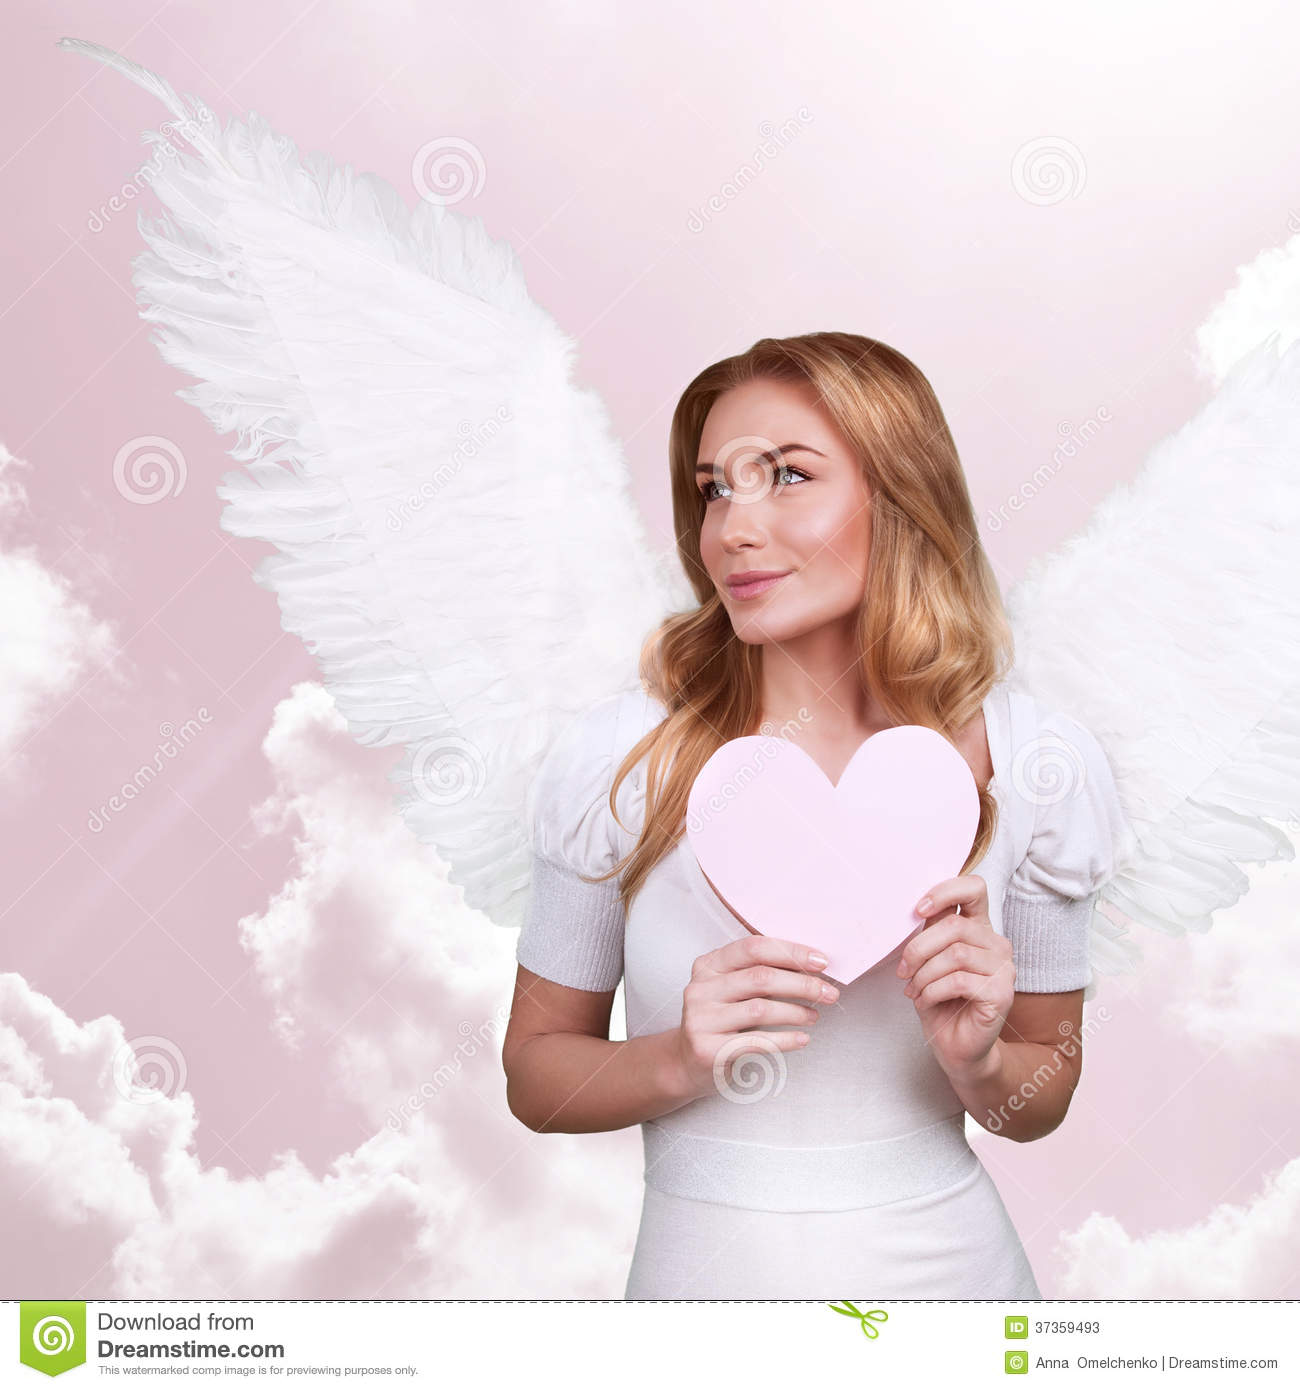 how to close account on cupid.com